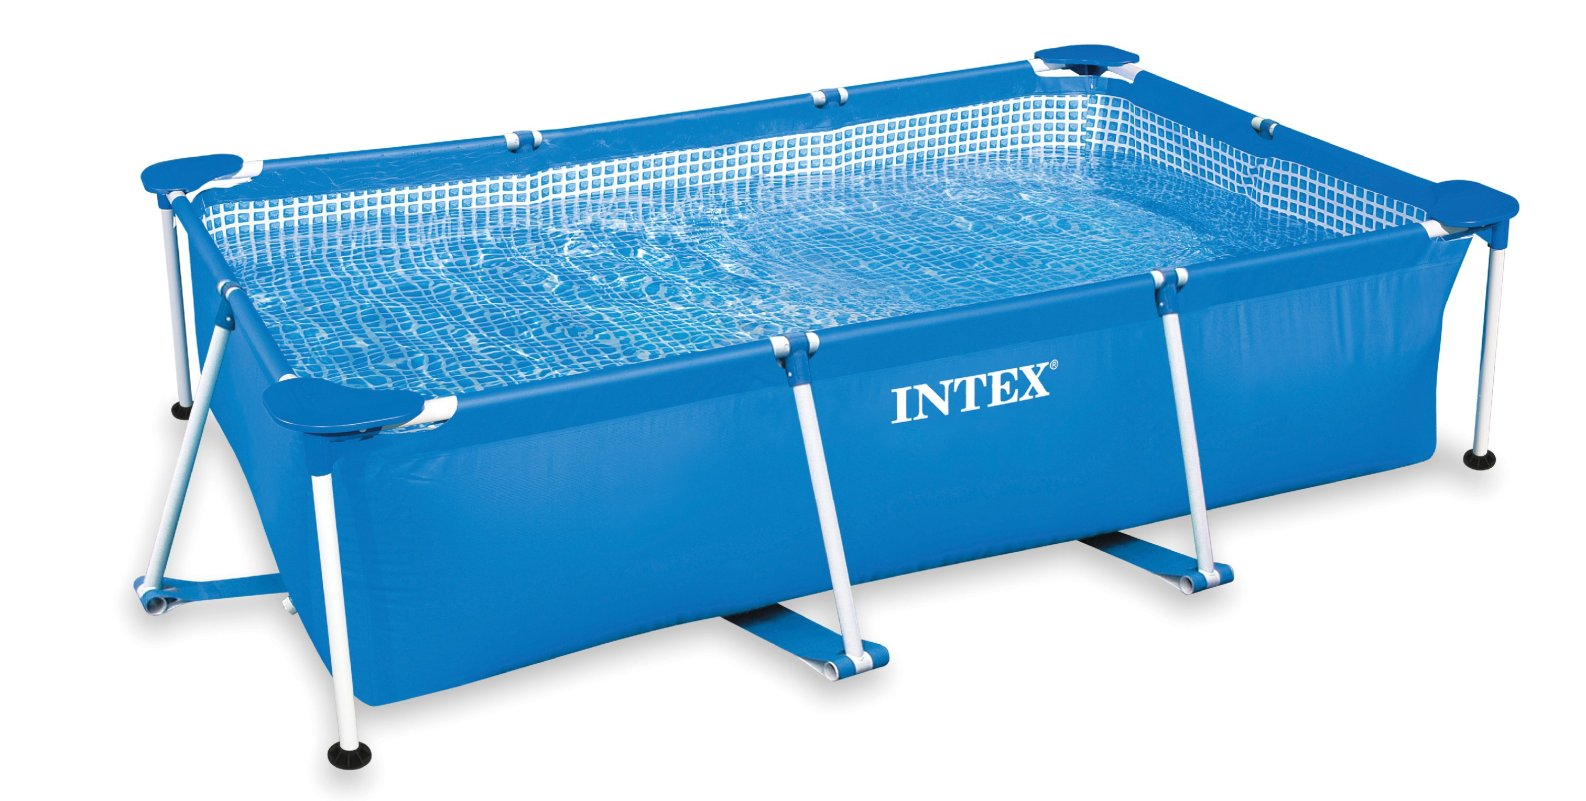 Bazén Intex Family 3,0 x 2,0 x 0,75 m 28272 NP